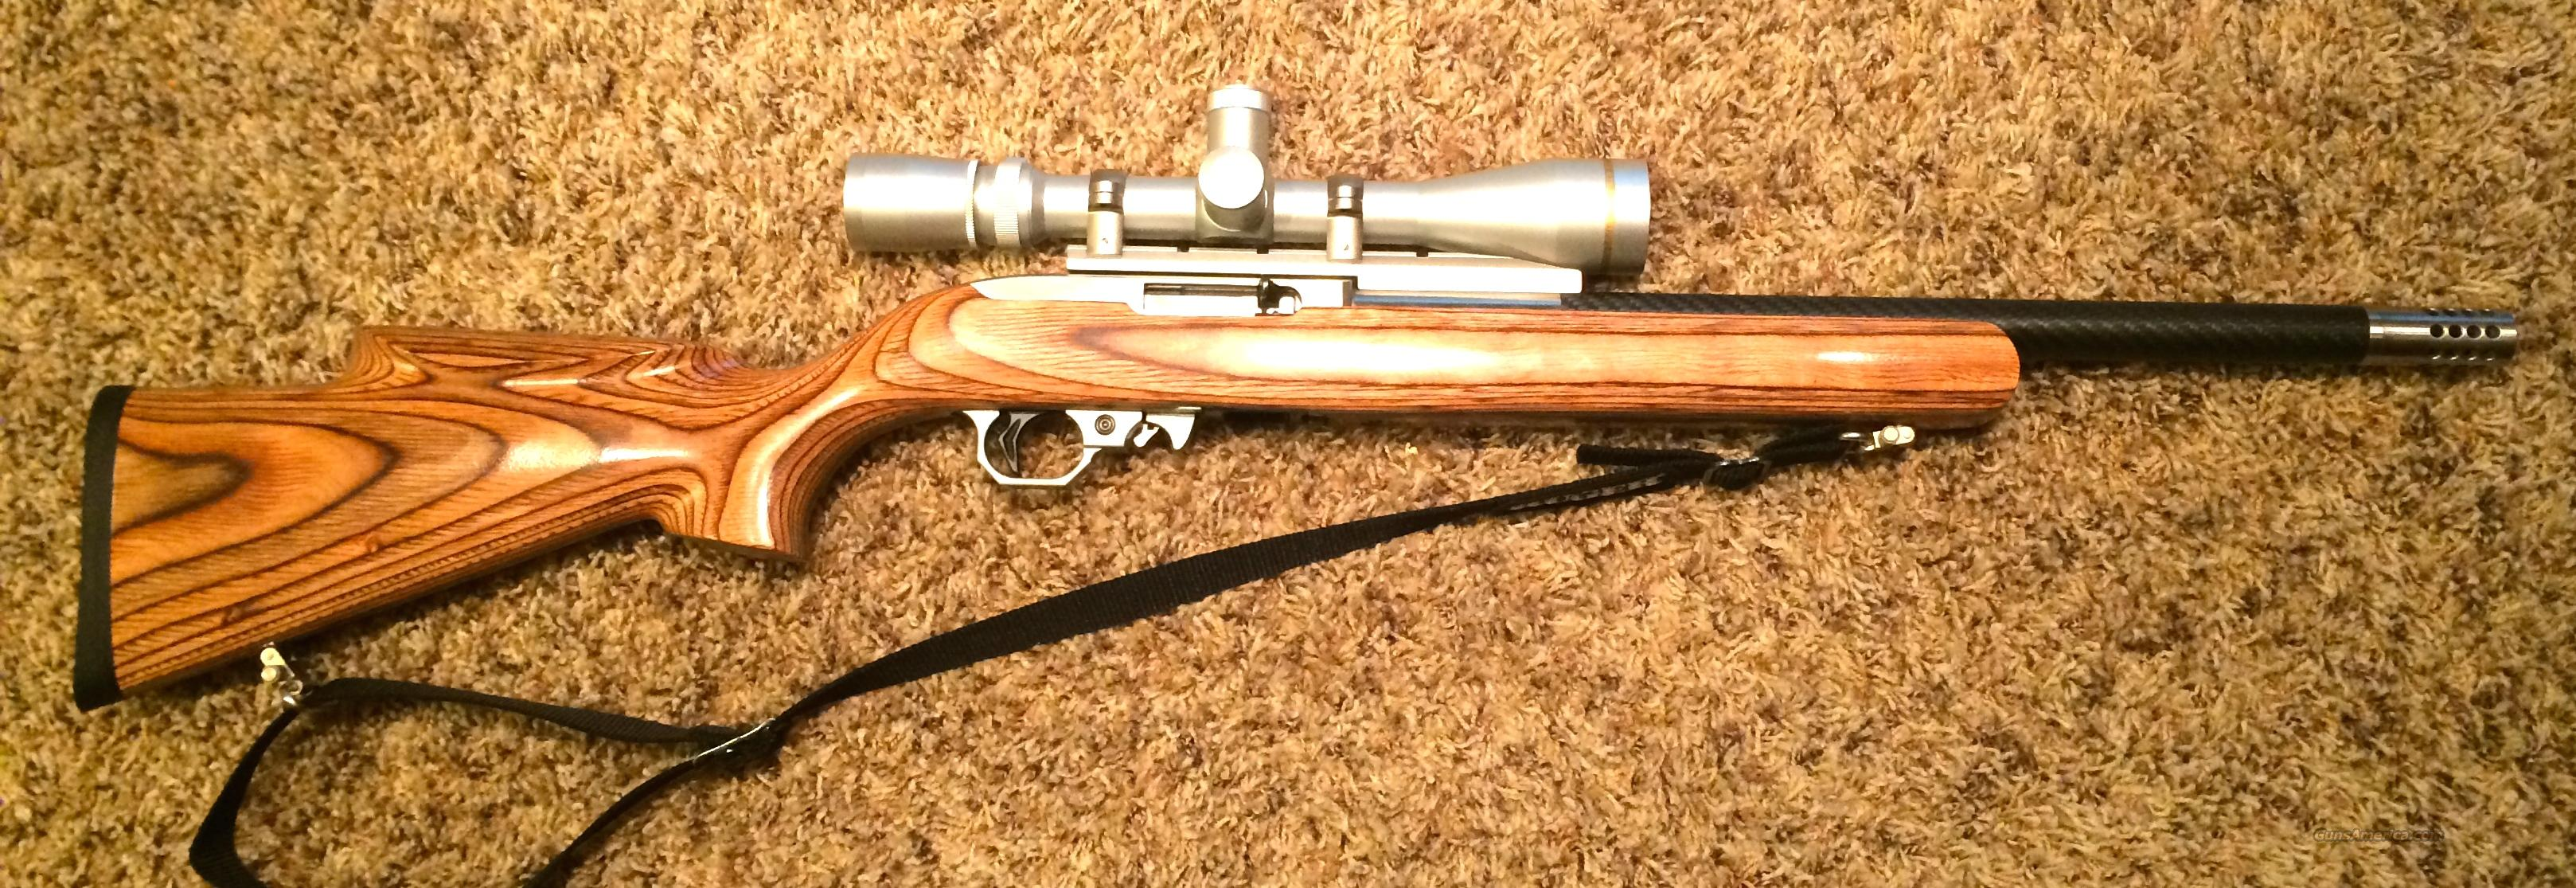 Ruger Volquartsen Custom 22lr Rifle with Leupold Scope  Guns > Rifles > Ruger Rifles > 10-22